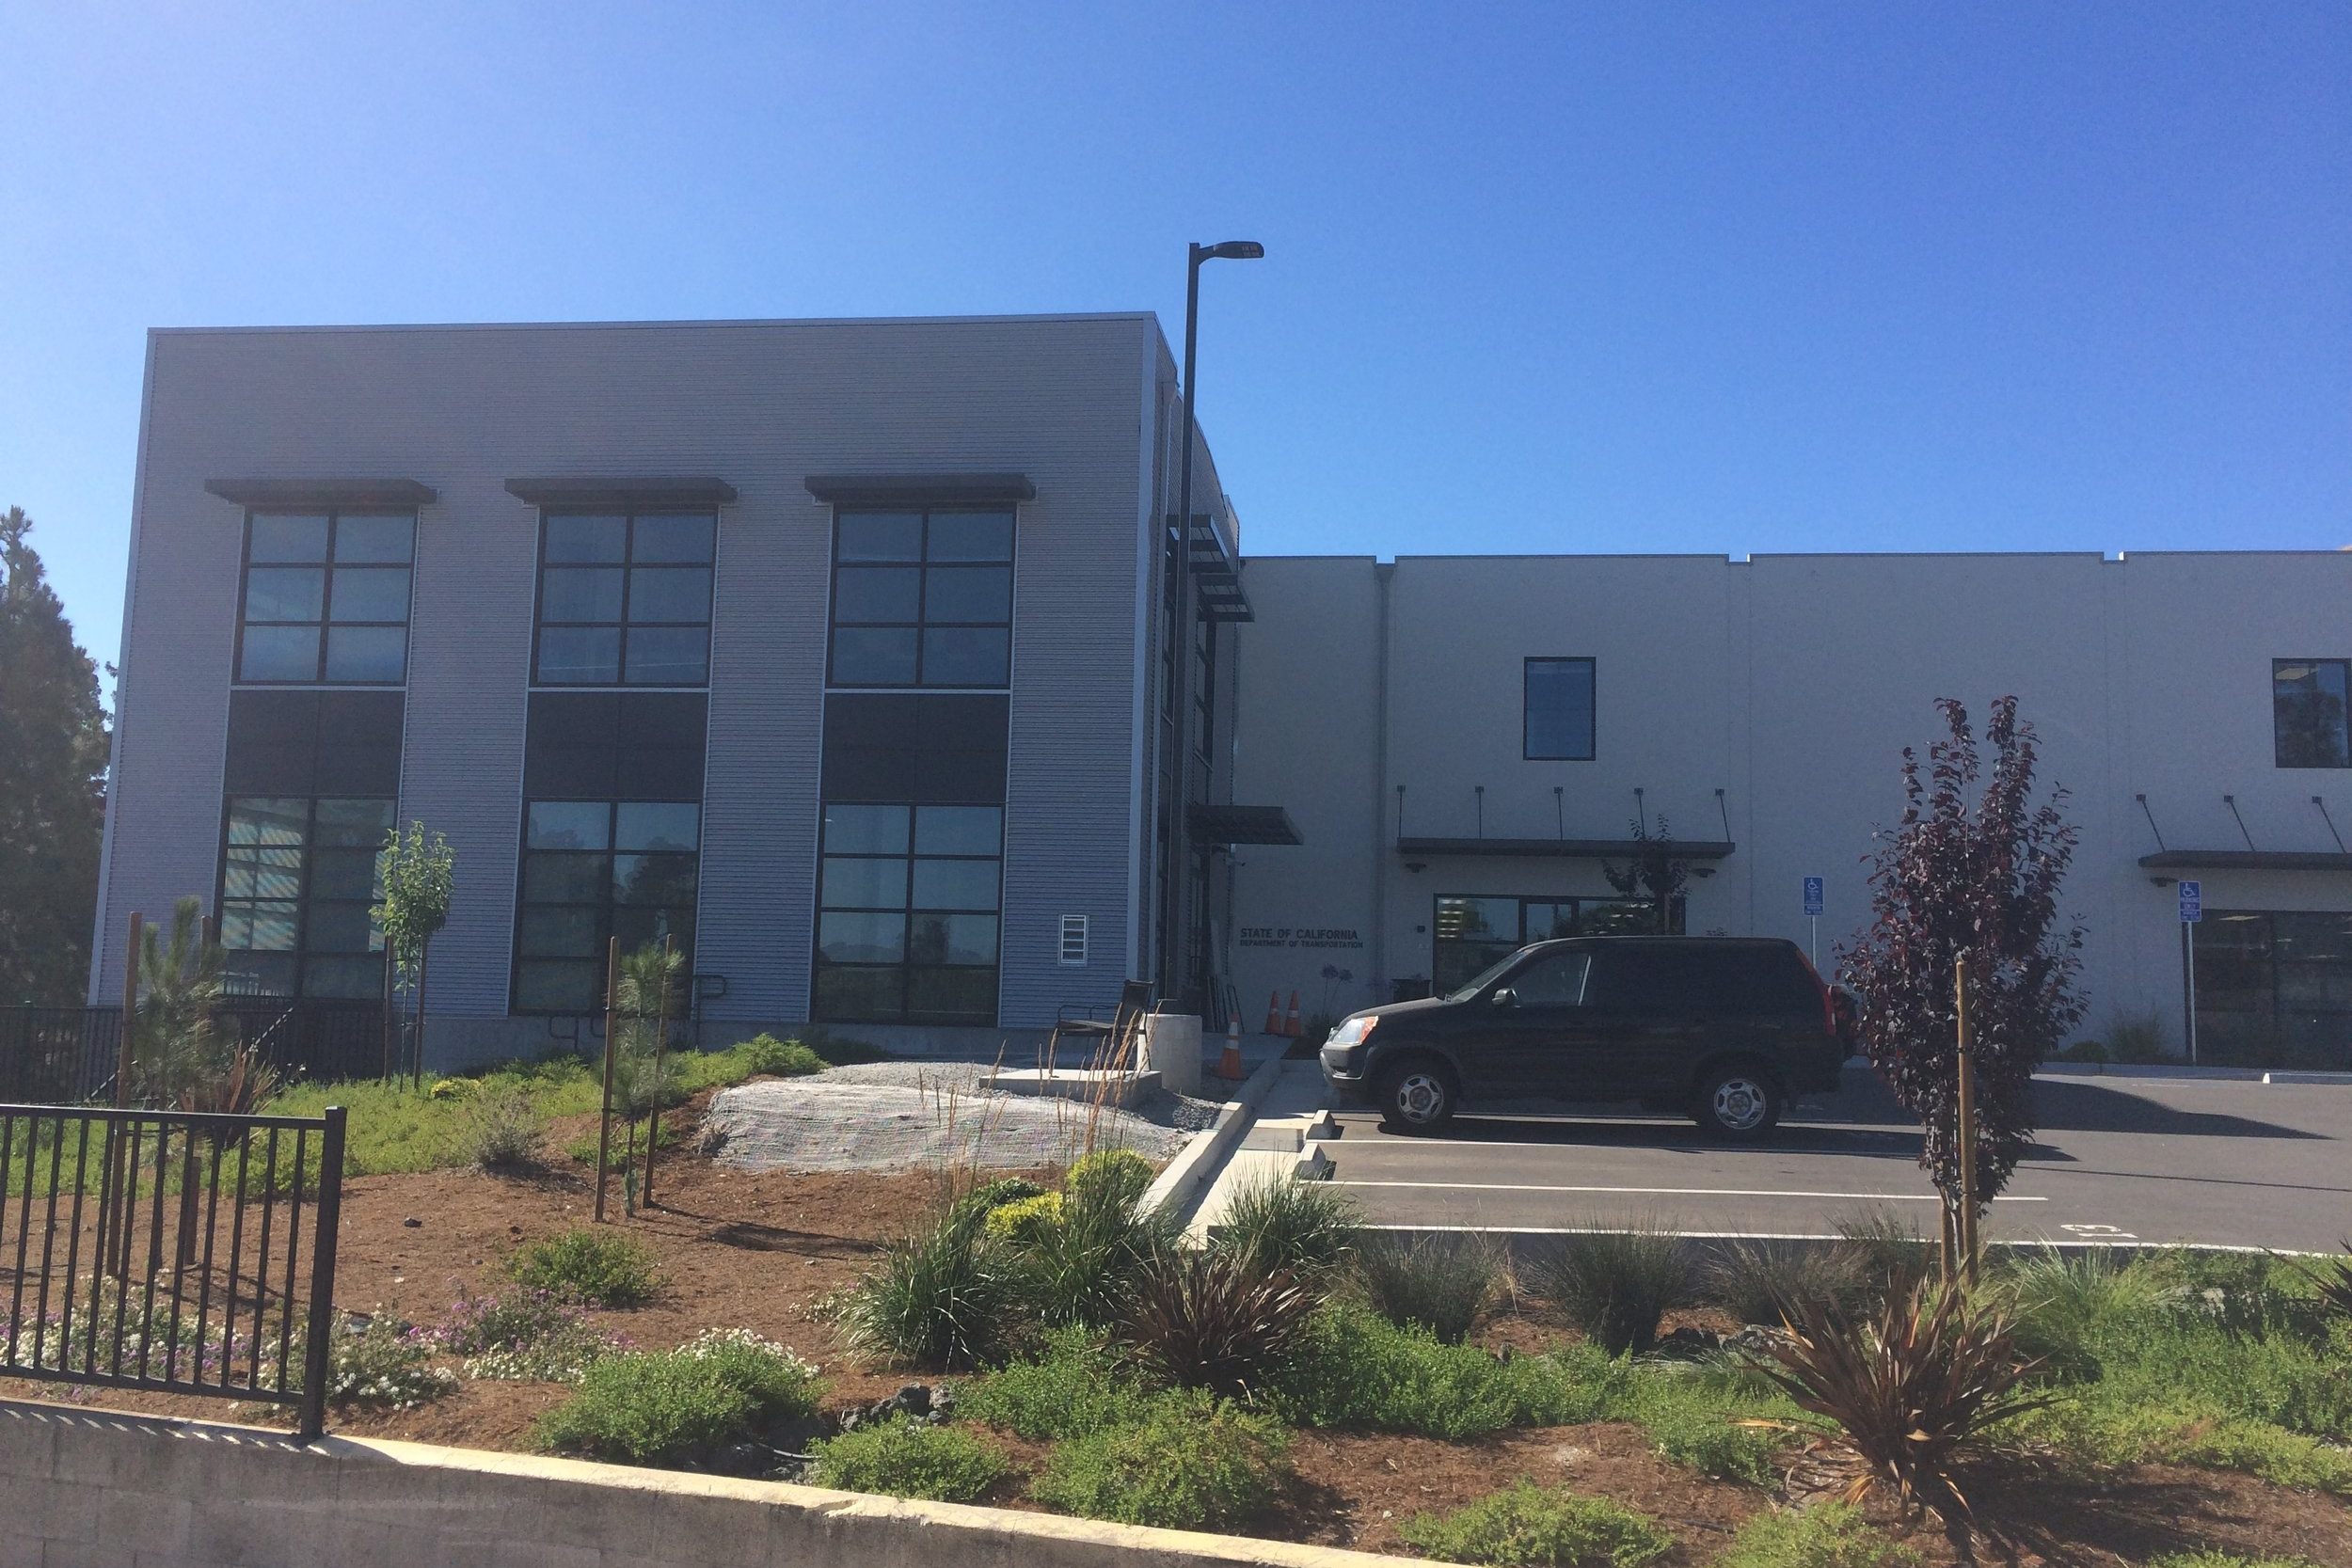 Caltrans District 5 - LEED Silver